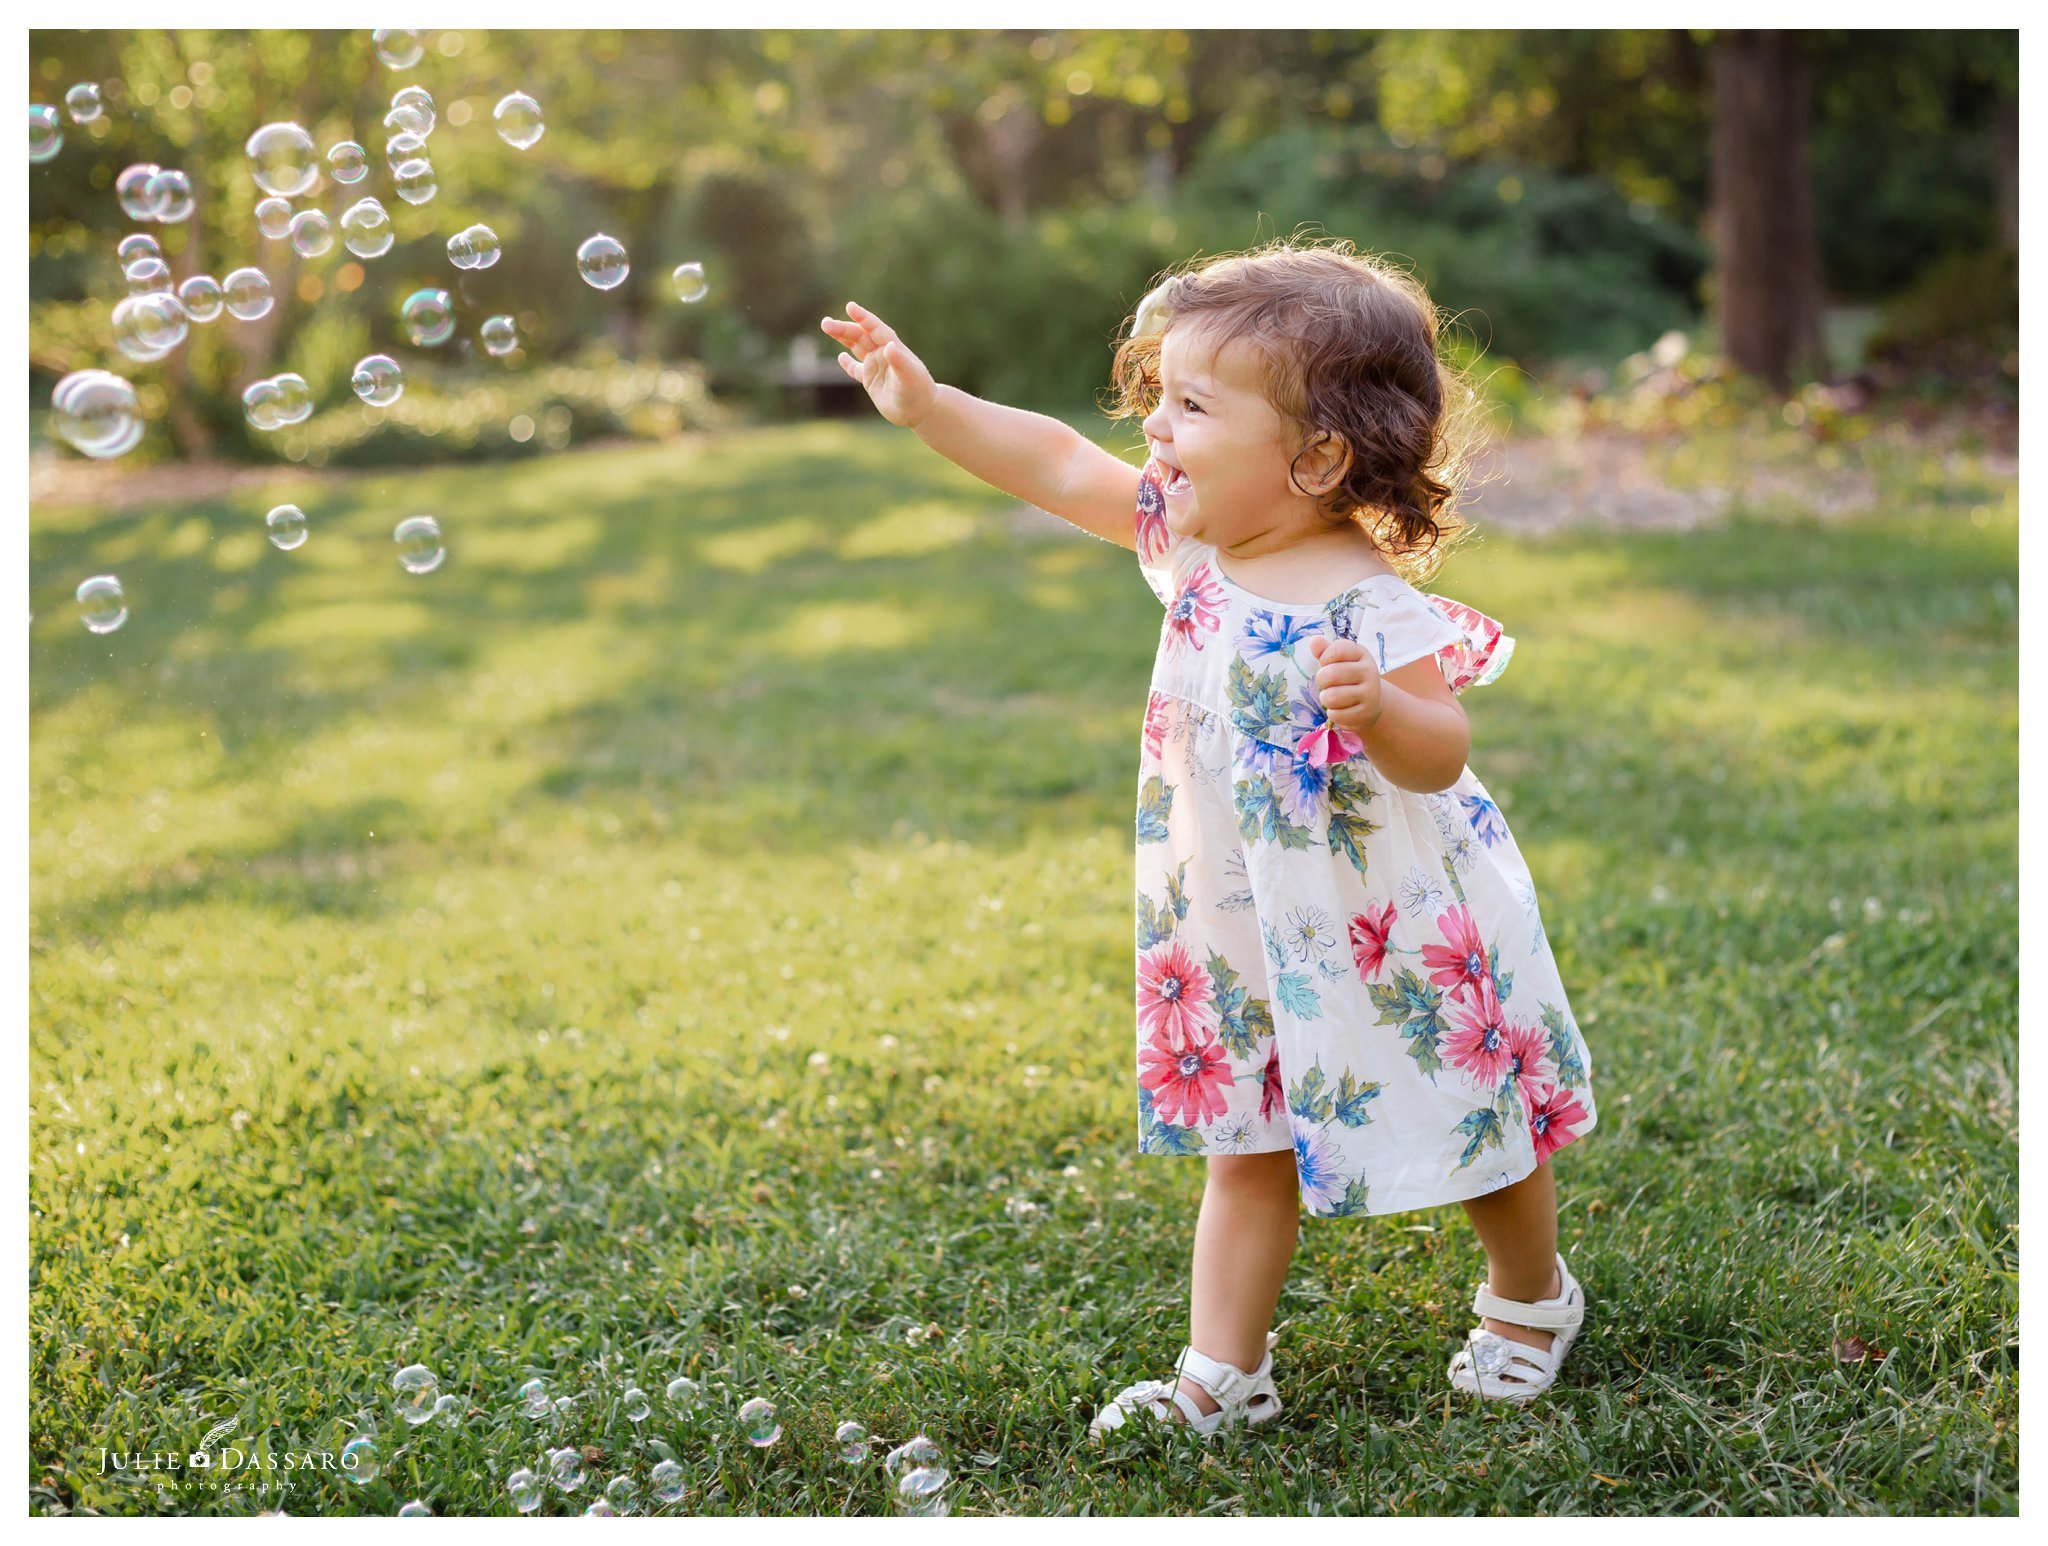 one year old chasing bubbles